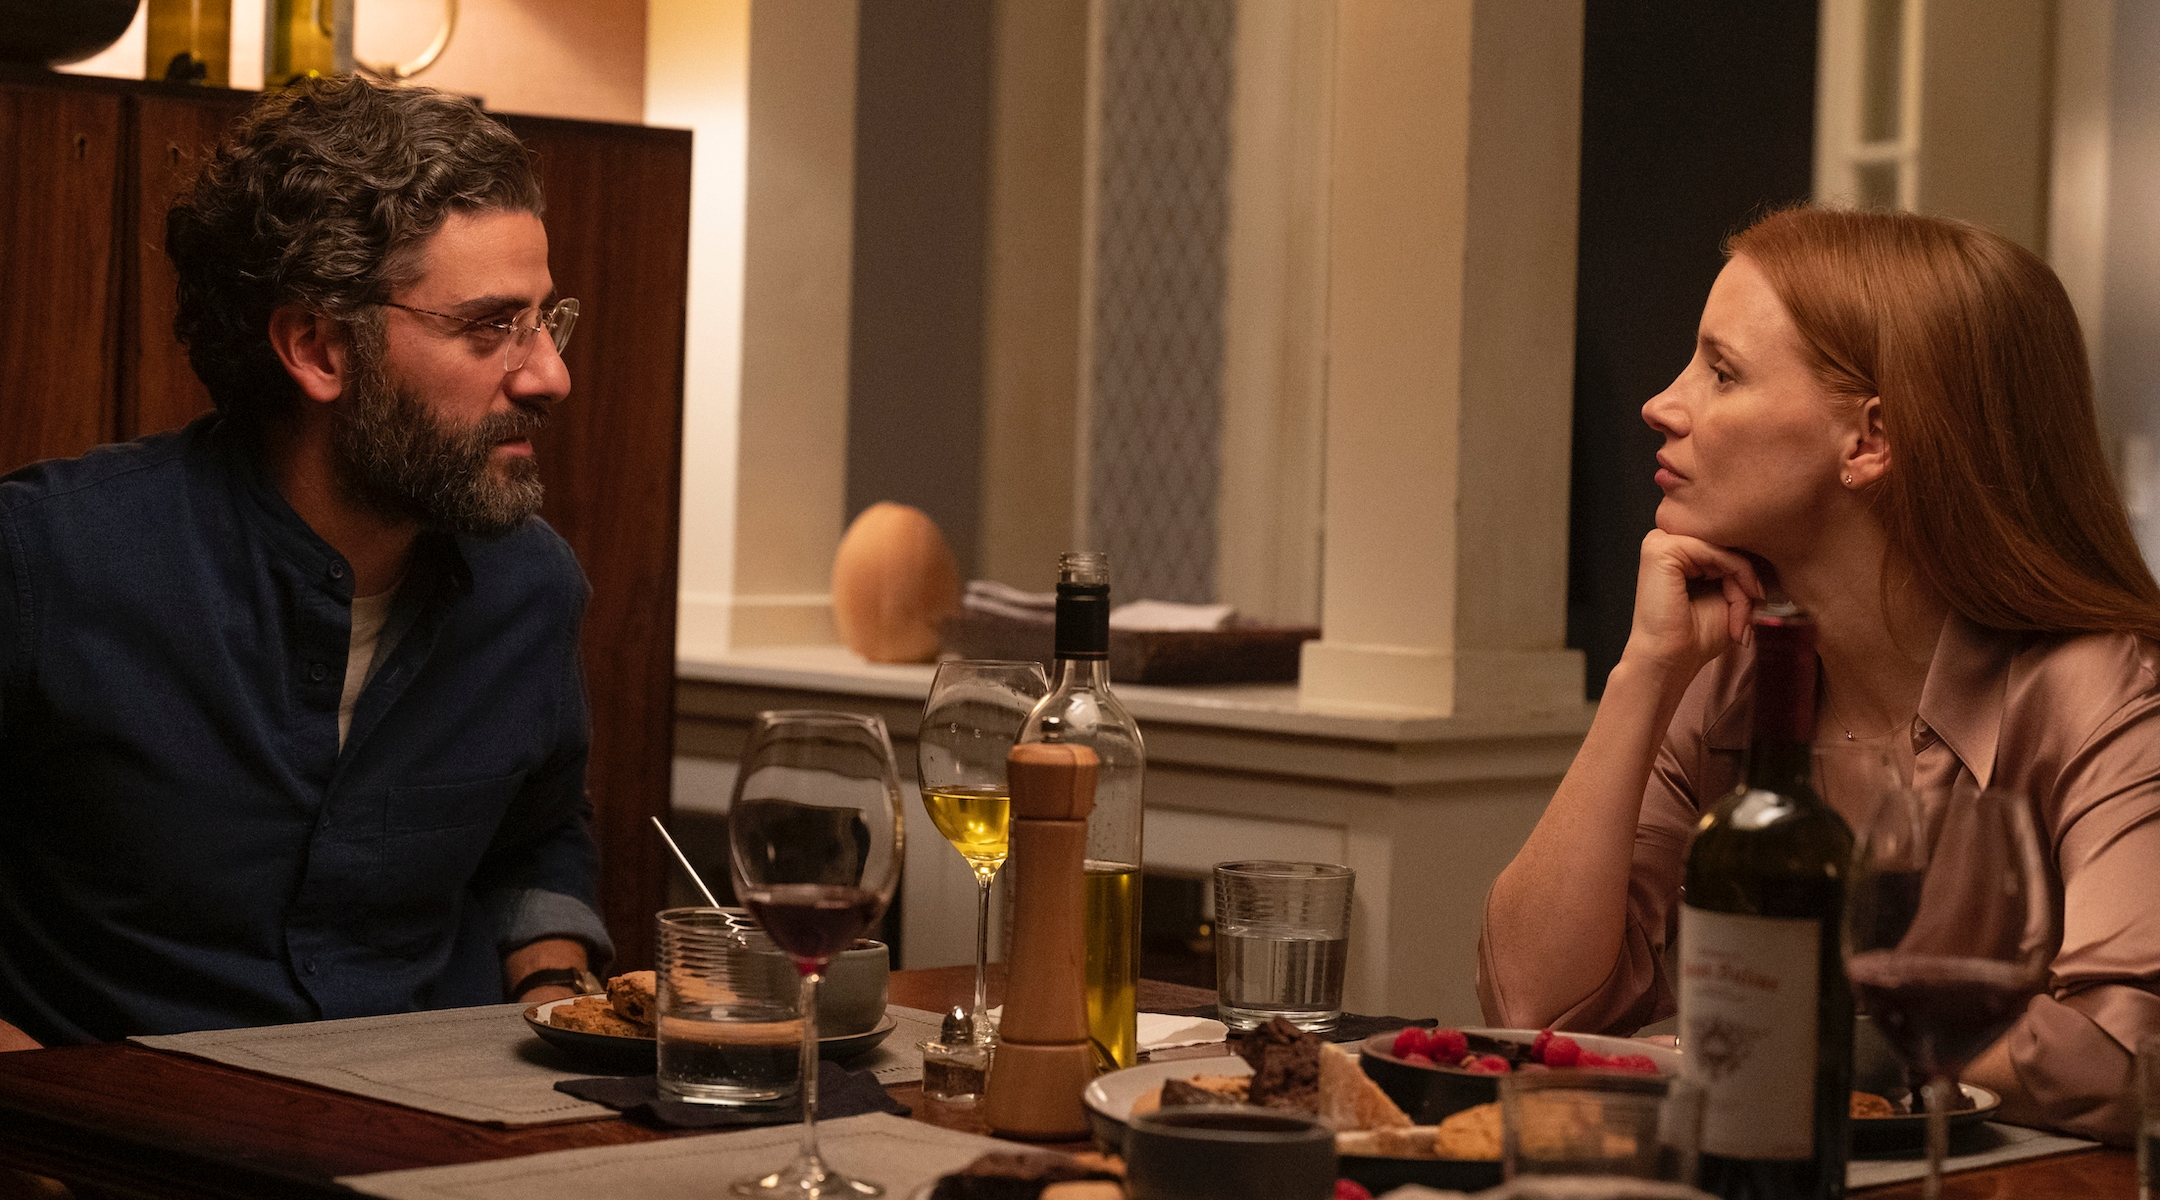 Hagai Levi's 'Scenes From a Marriage' is the Israeli creator's most personal HBO series yet